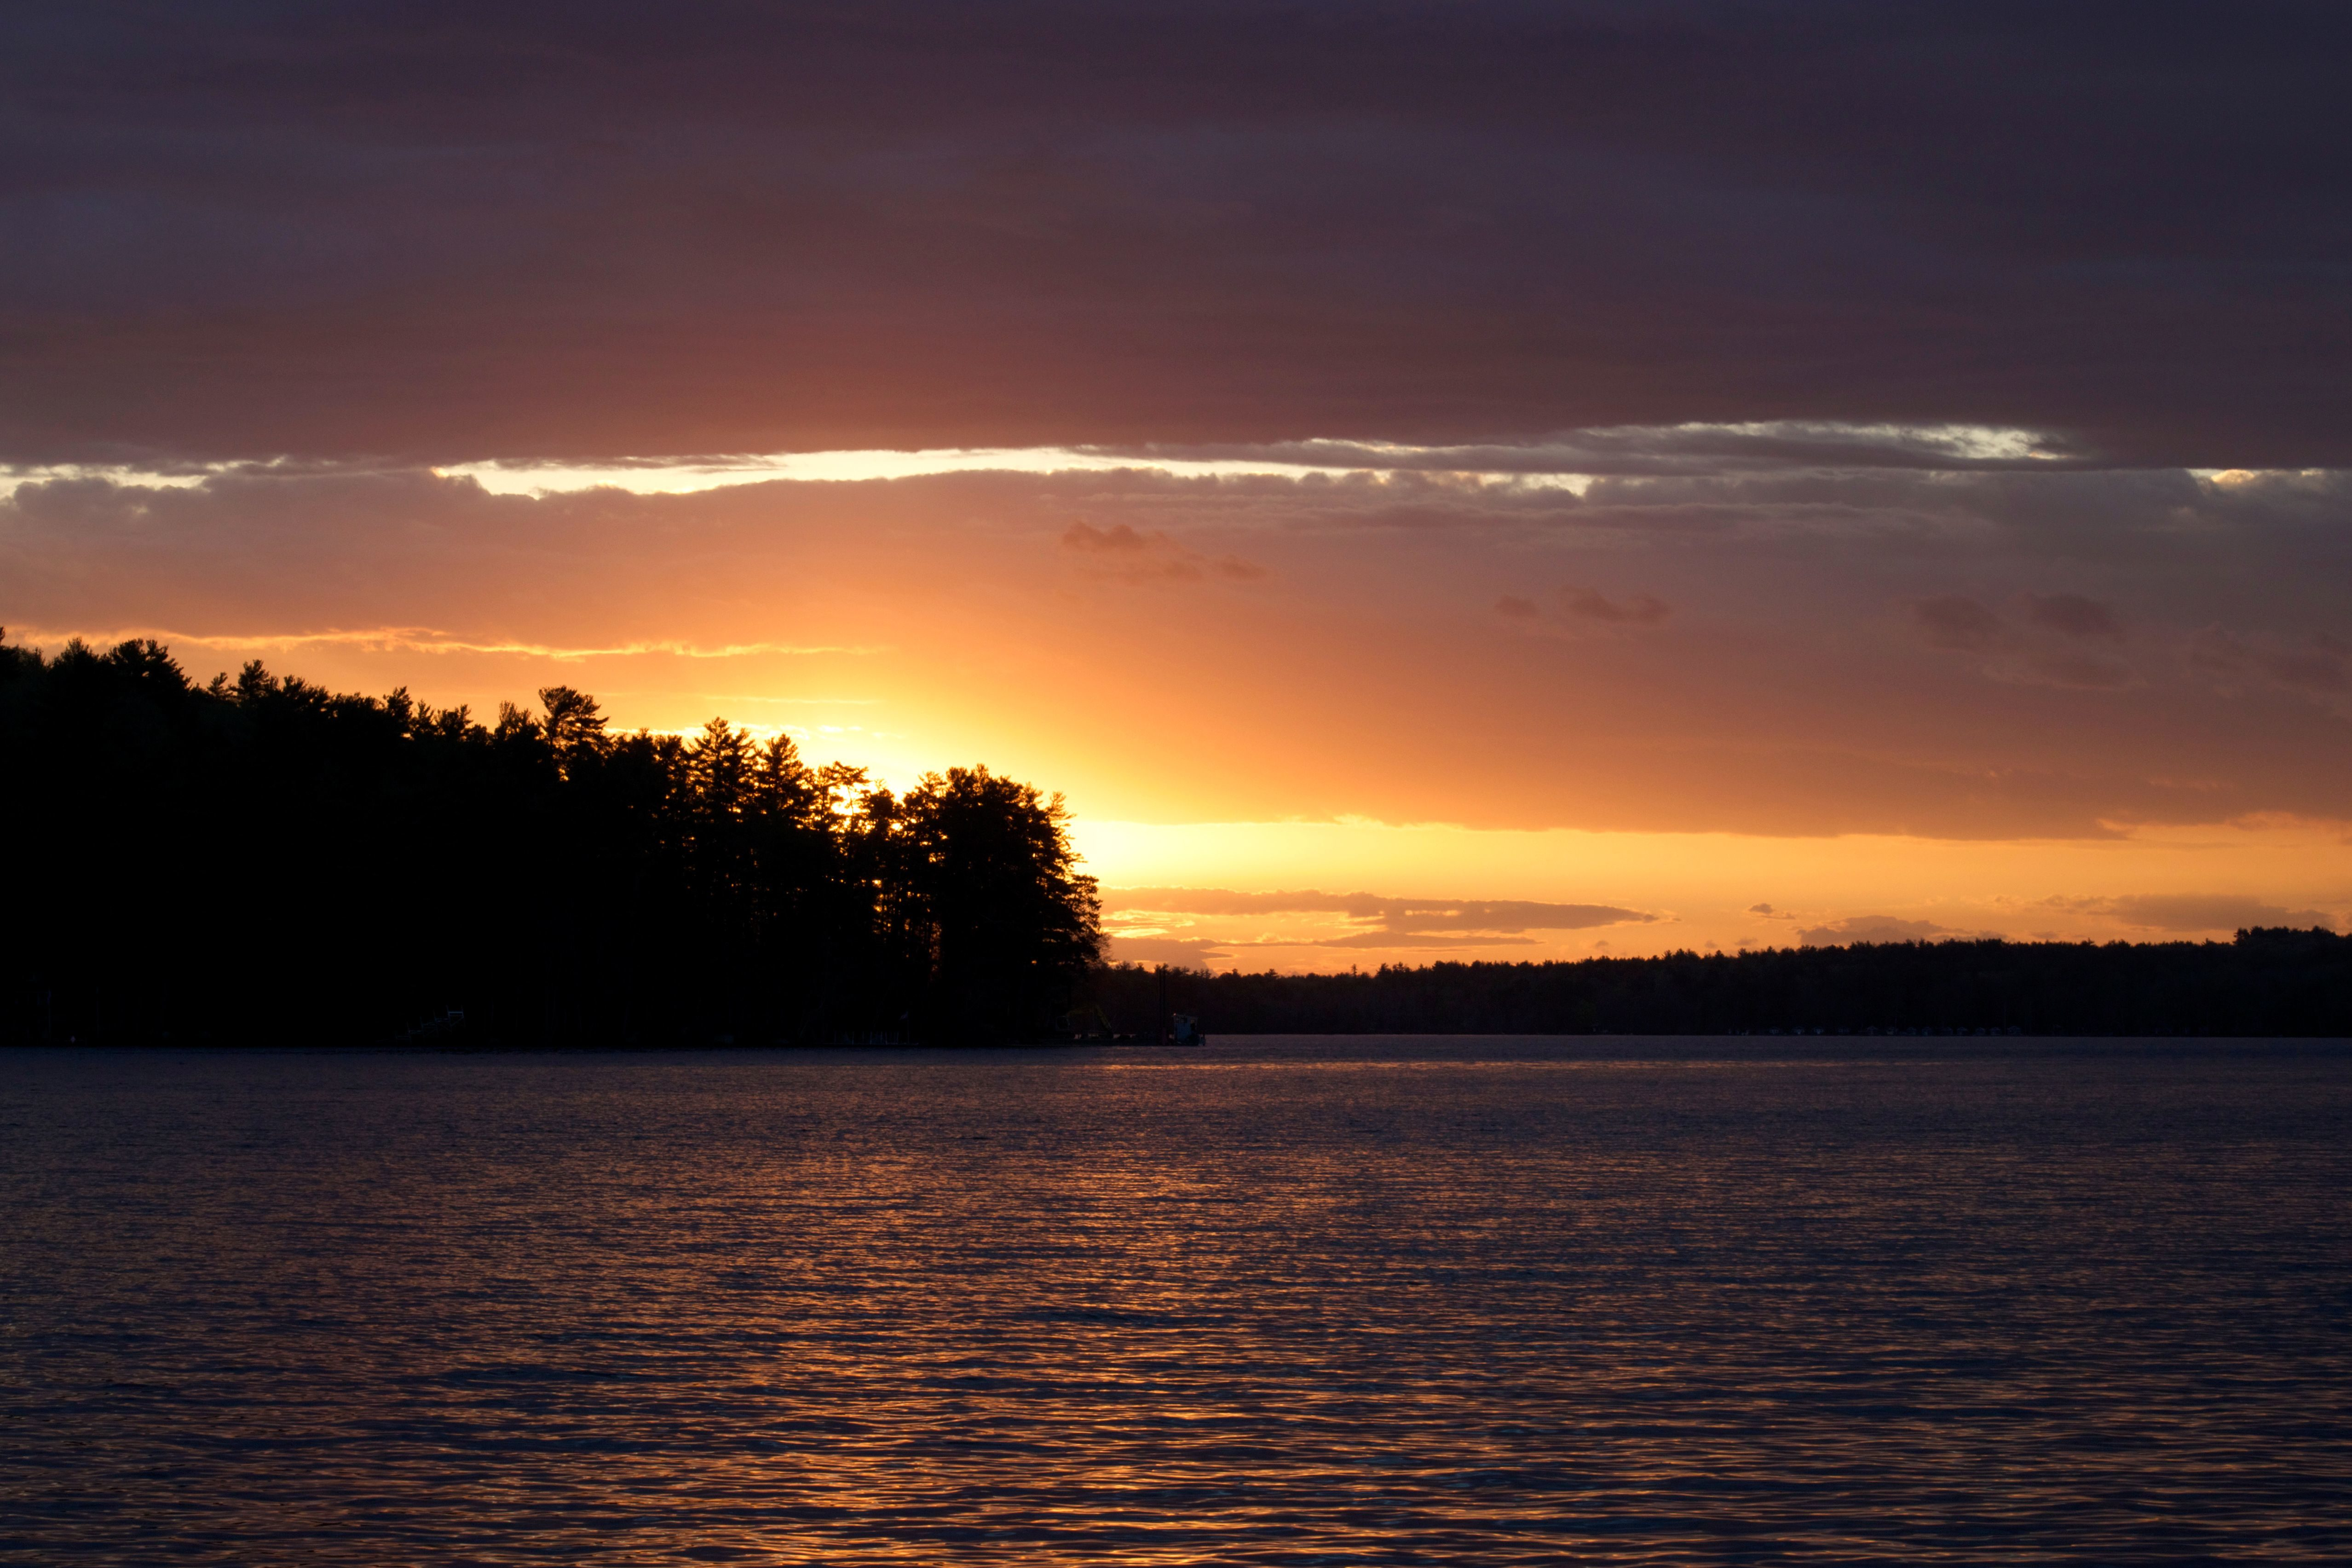 Free picture: colorful sunset, sunset, summer, trees, lake ...